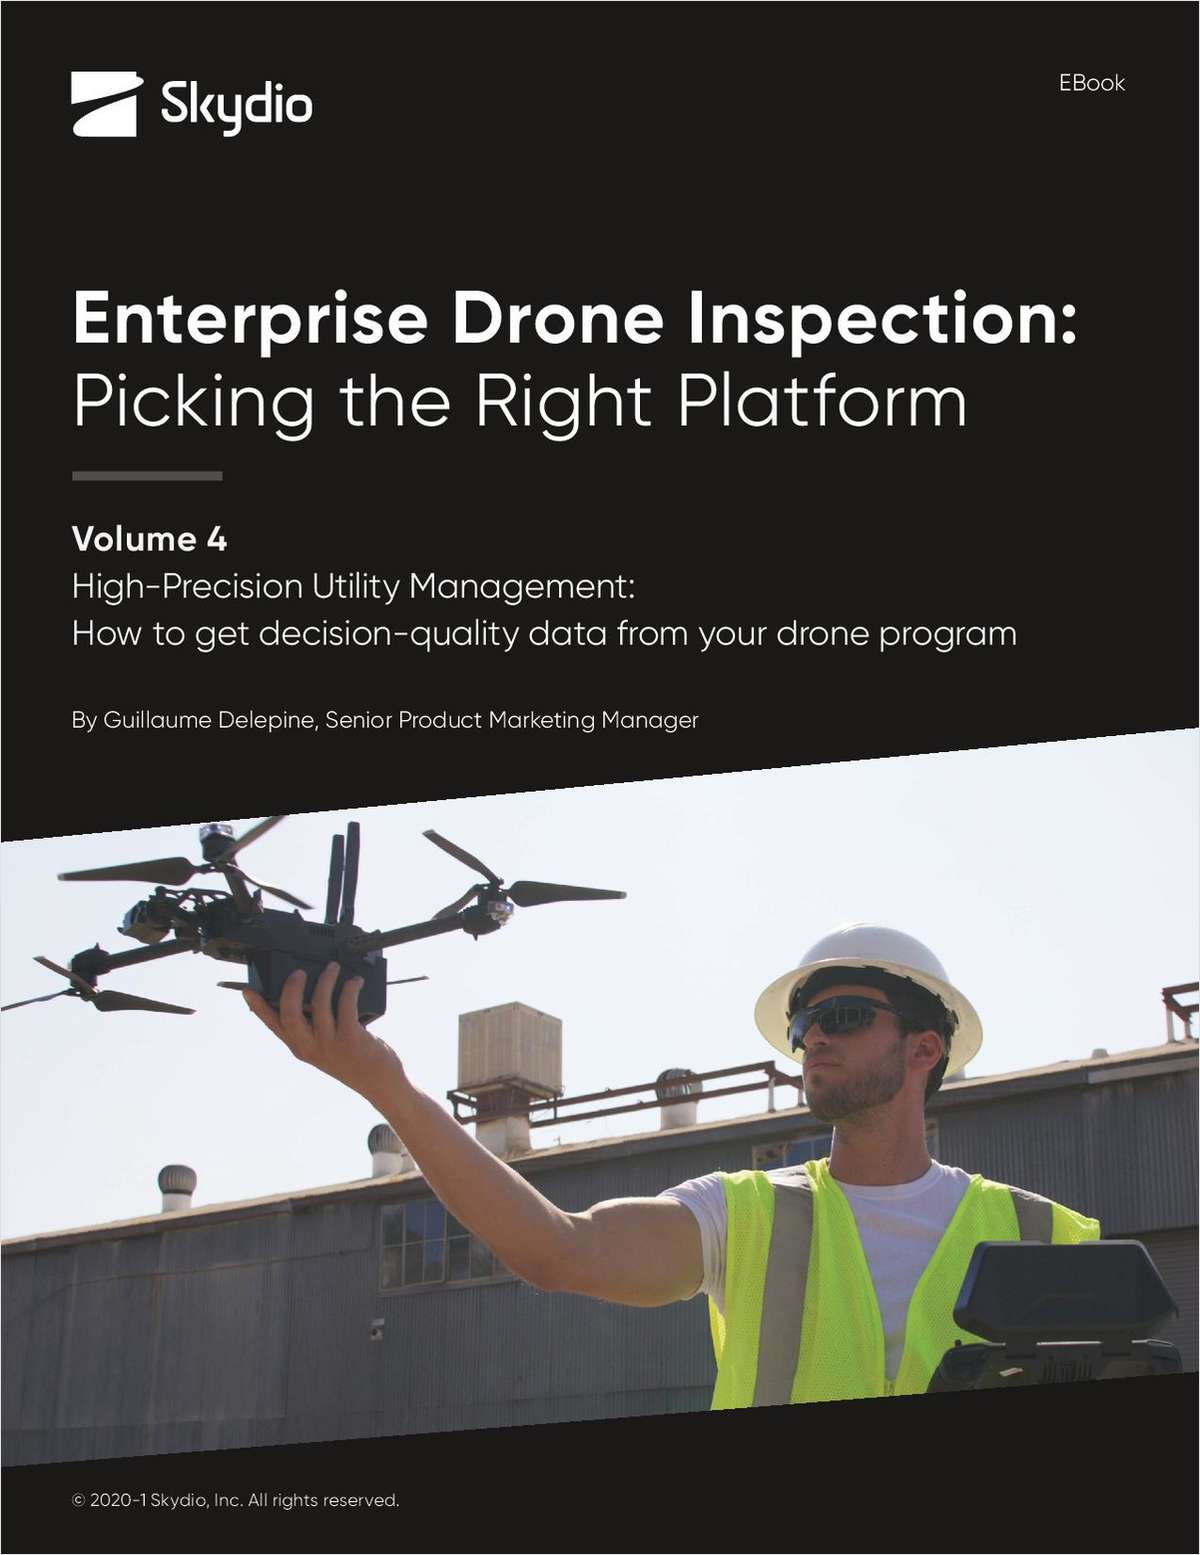 Utility Management: How to Get Decision-Quality Data From Your Drone Program